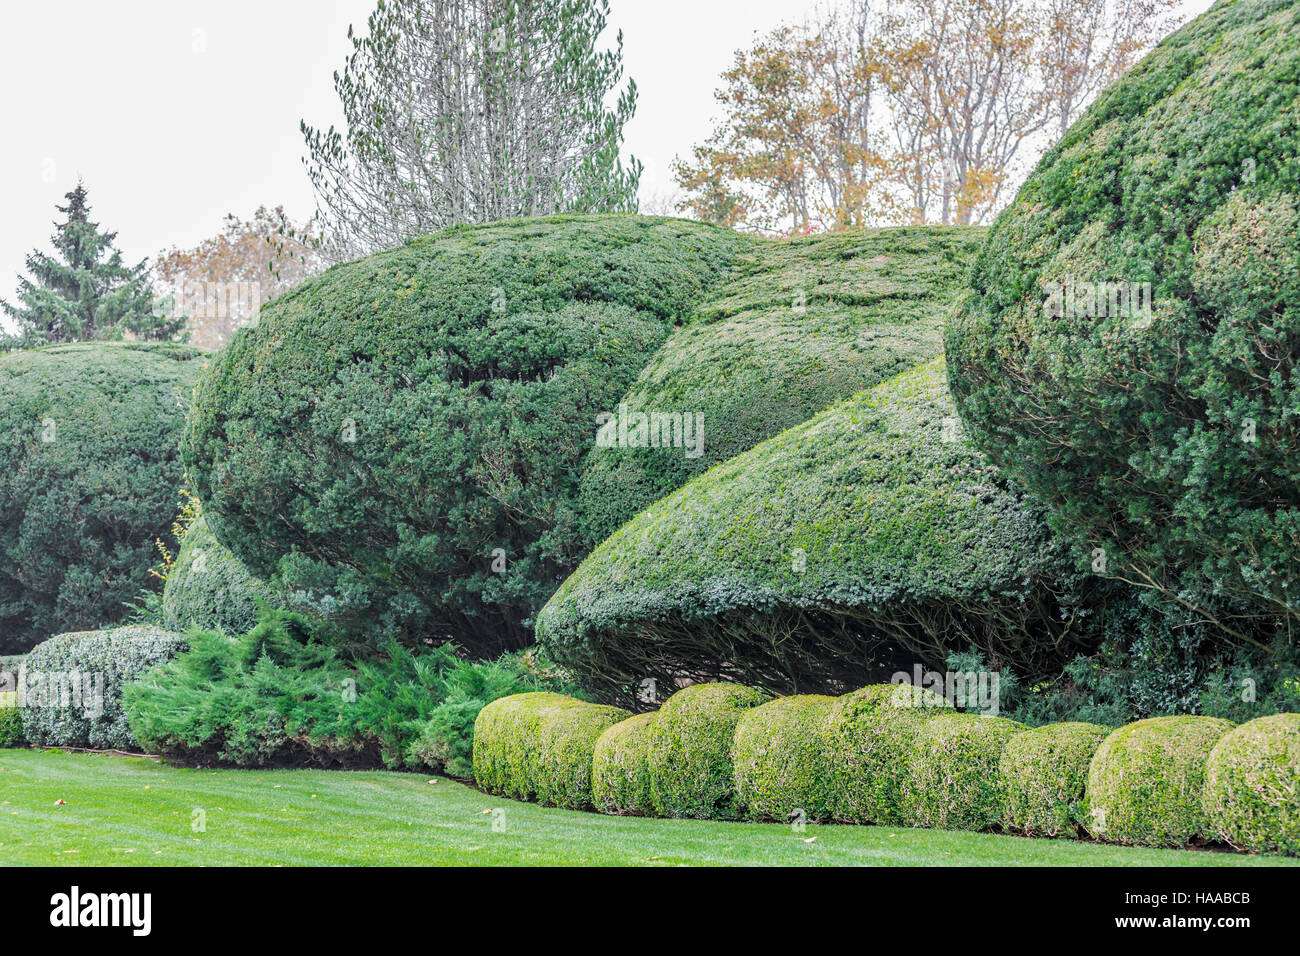 expertly cut and shaped hedges and bushes in a prized landscaped yard - Stock Image